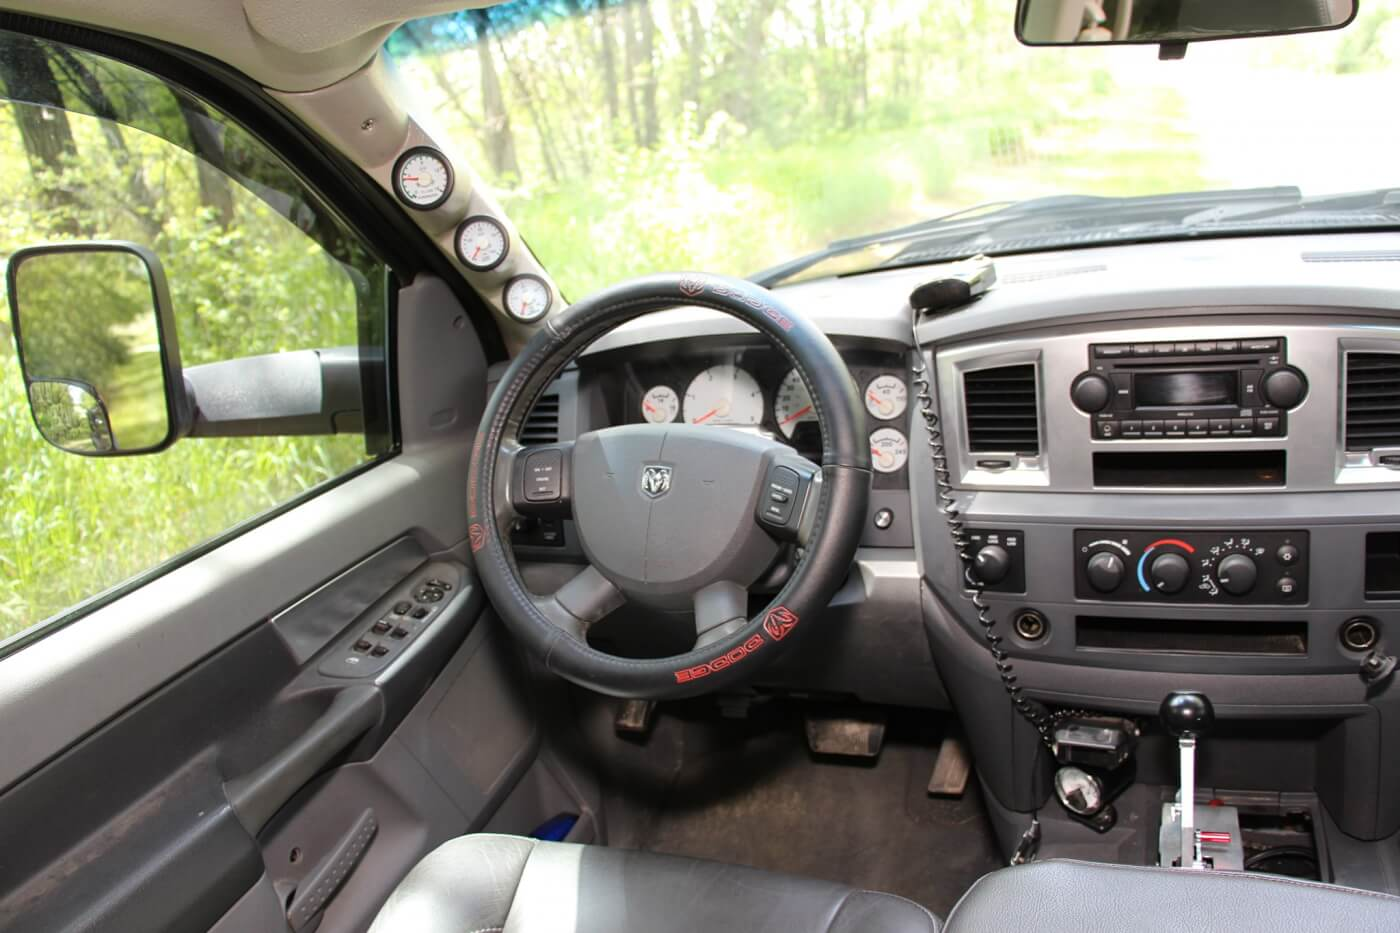 Once in the cab, most folks immediately notice how nicely done the leather seats are (they were reupholstered by leatherseats.com). However, the first thing we spotted was the radar detector sitting on the dash. After all, if you own a truck that makes 80psi of boost, more than 1,100hp, and is capable of running 10's, you might want to know when the boys in blue are nearby.